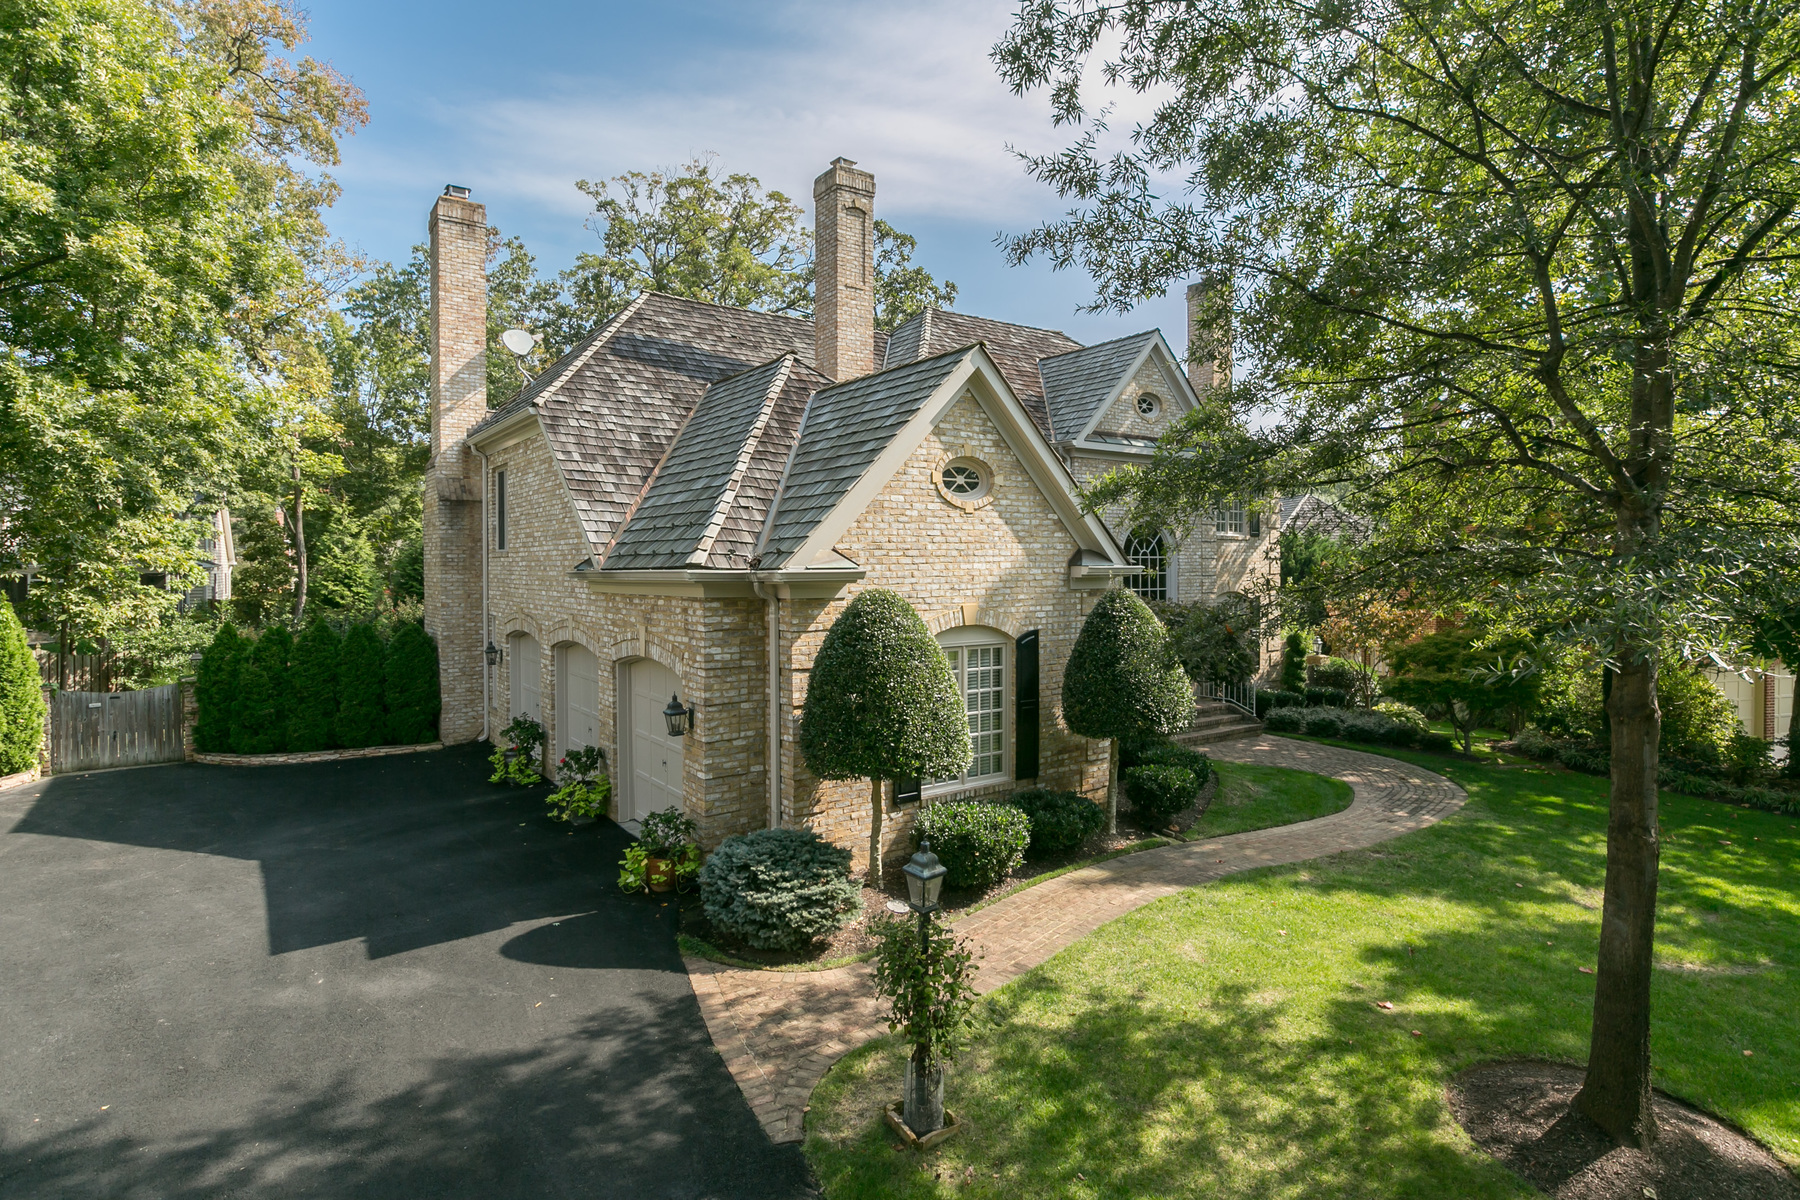 Single Family Home for Sale at Wycliffe 3808 Washington Woods Dr Alexandria, Virginia 22309 United States